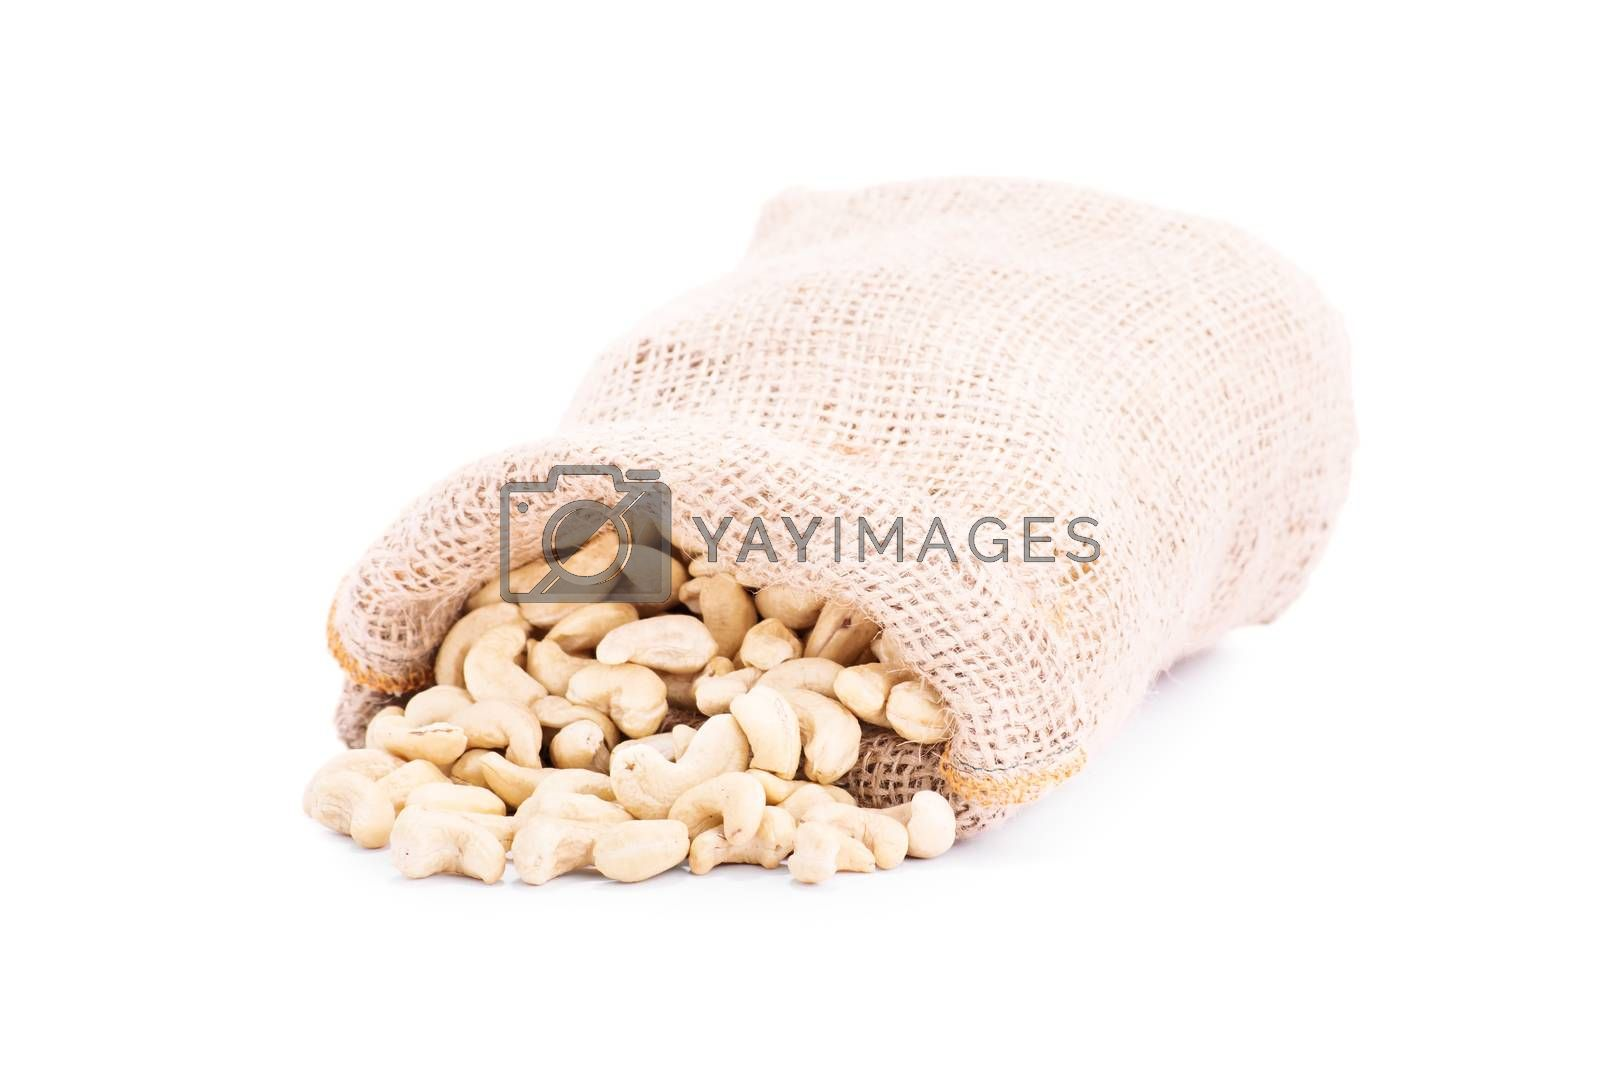 Spilled burlap sack of cashews, isolated on white background.